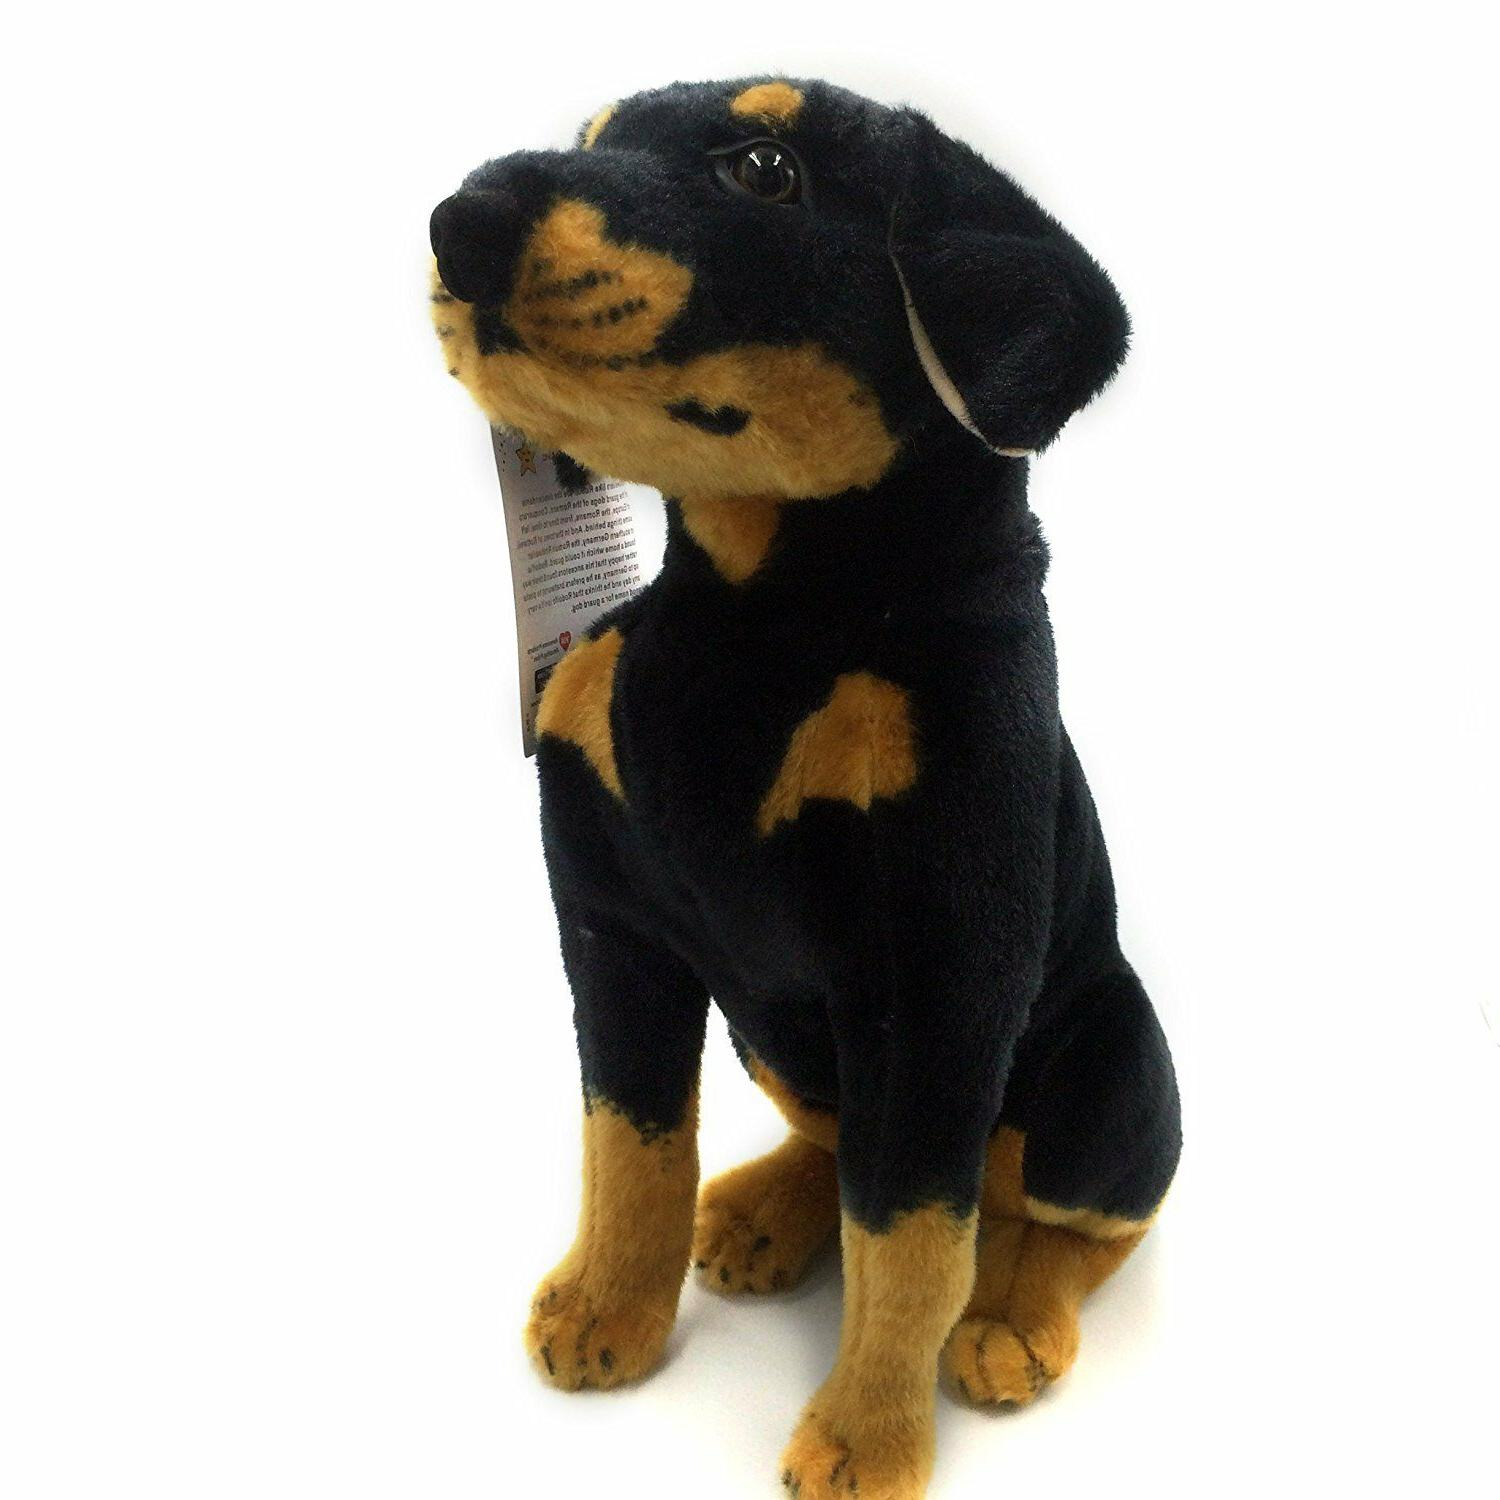 VIAHART 15 Large Dog Plush |